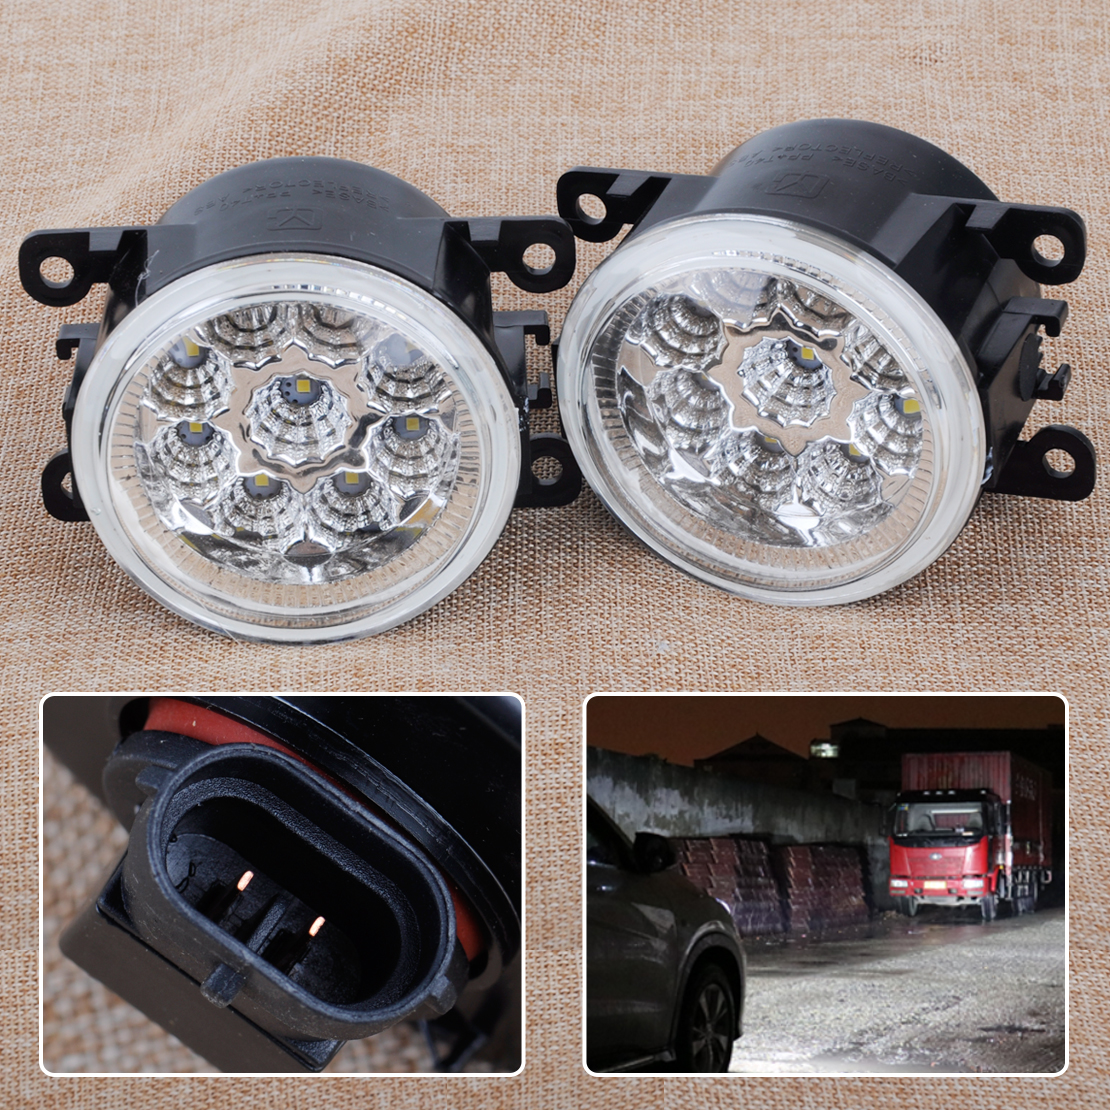 CITALL 2X 9 LED Front Fog Lamps DRL Daytime Running Driving Lights Fit for Infiniti G37 M45 M35 QX60 Nissan Altima Maxima Versa<br>